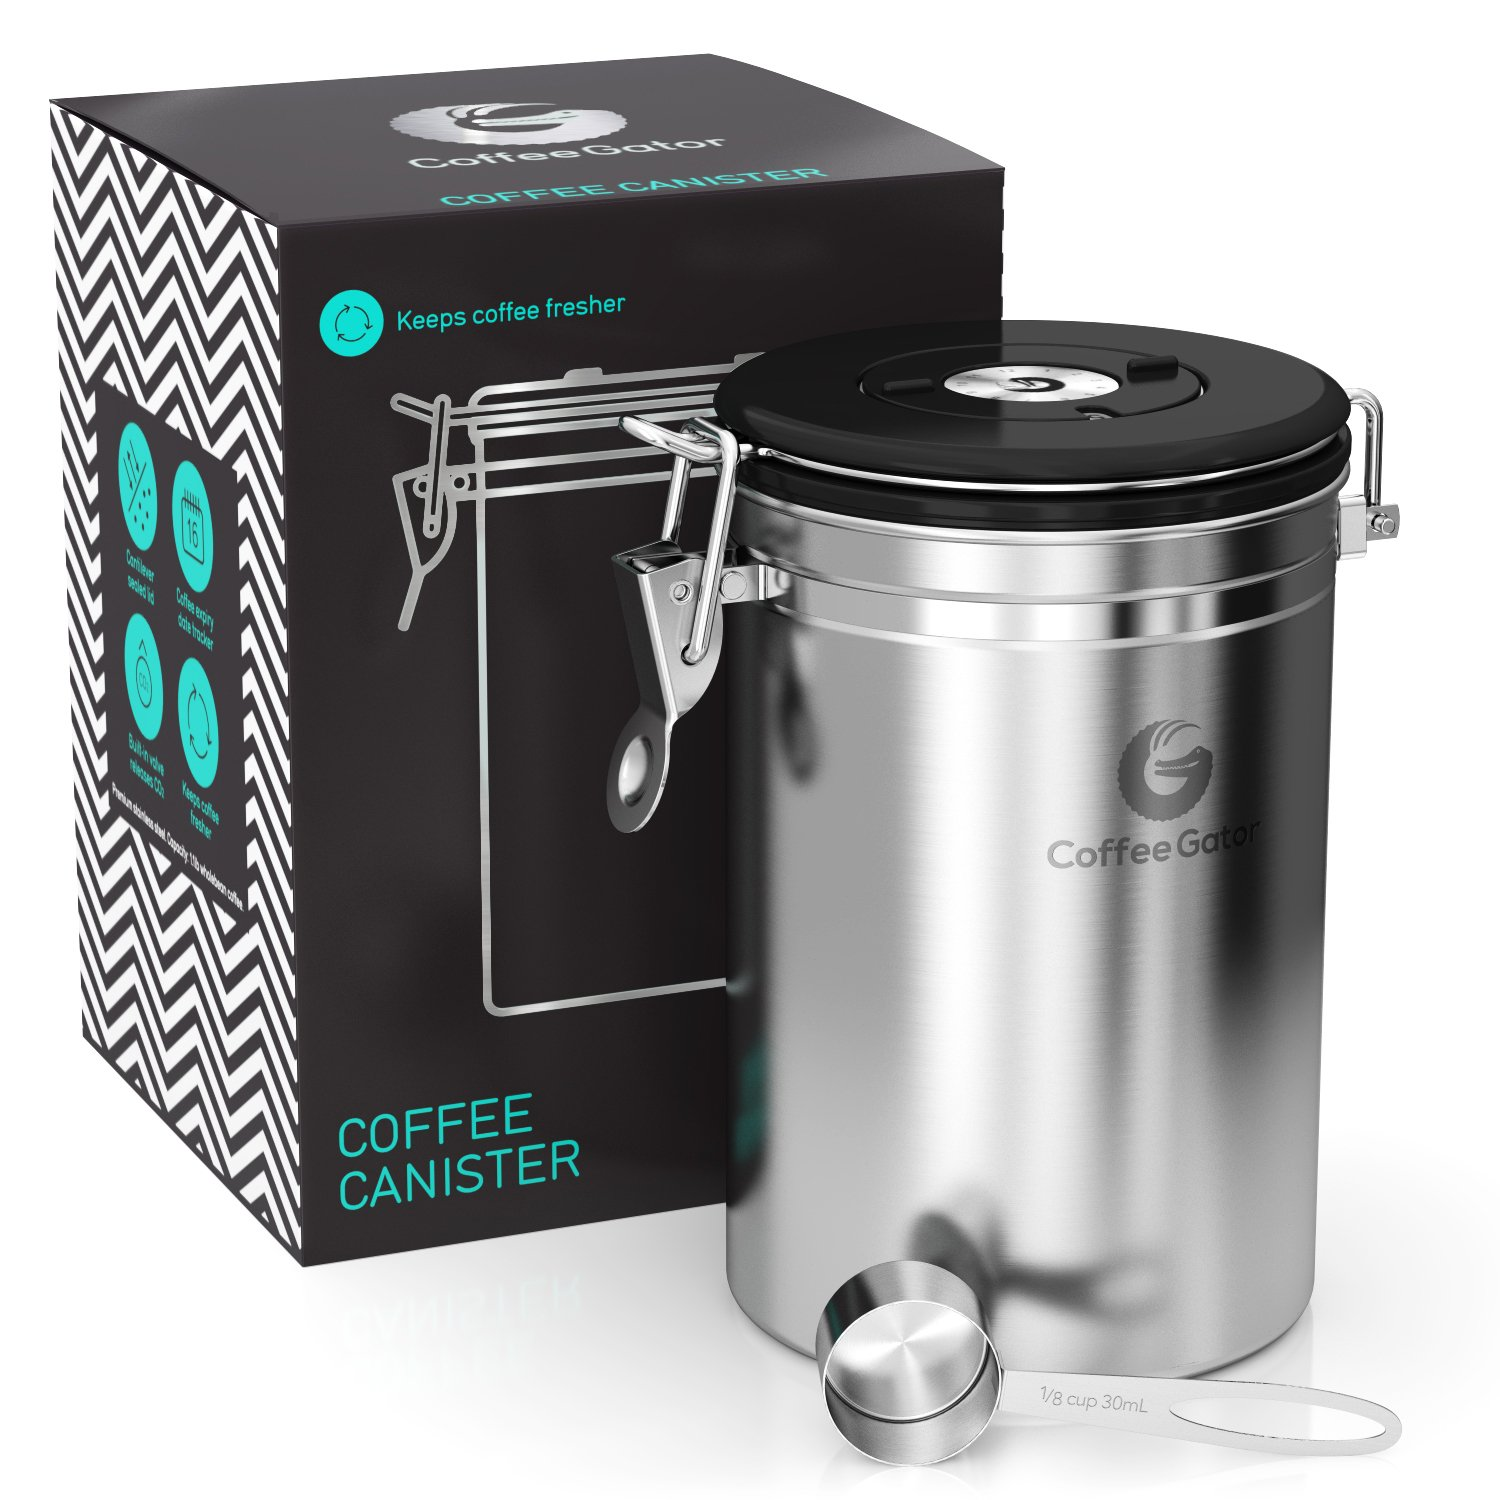 Coffee Gator Stainless Steel Container - Canister with co2 Valve, Scoop and eBook - Large, Silver